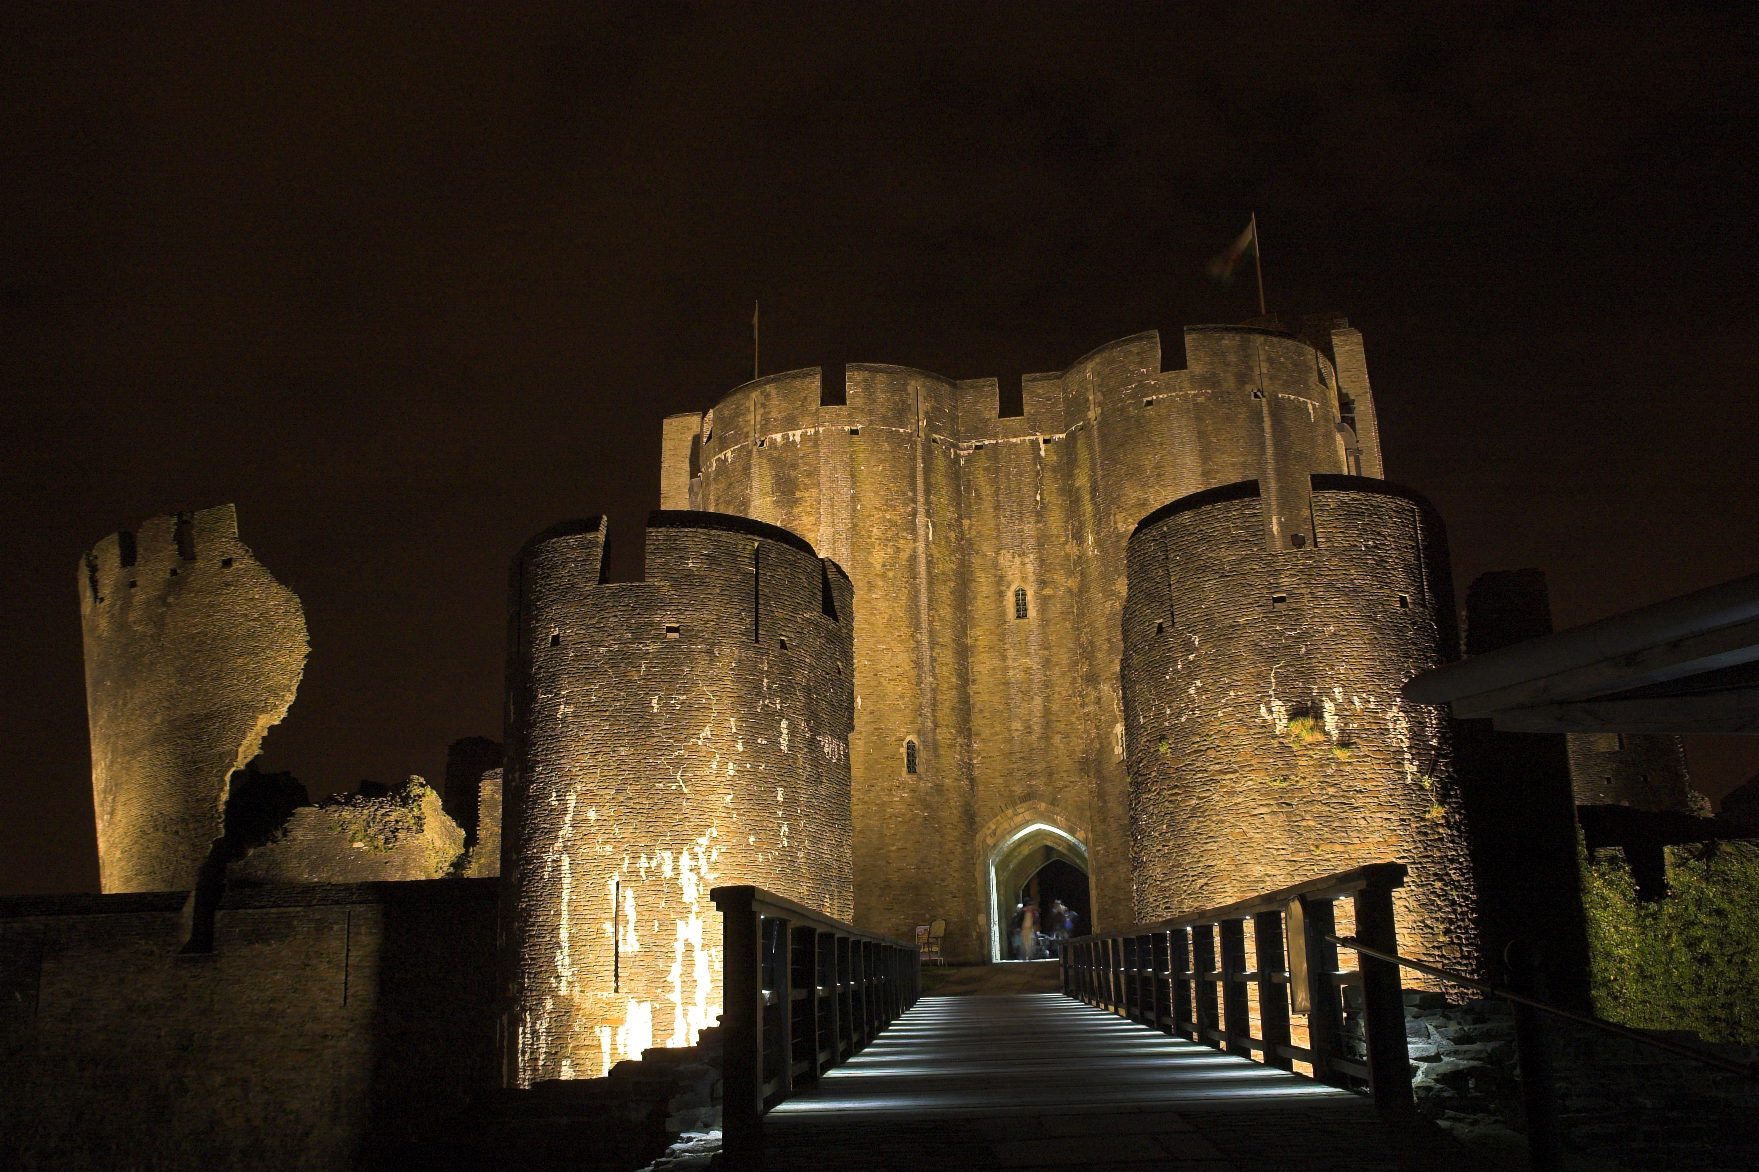 Cadw - Architectural Lighting for Visitor Attractions - LTP Integration